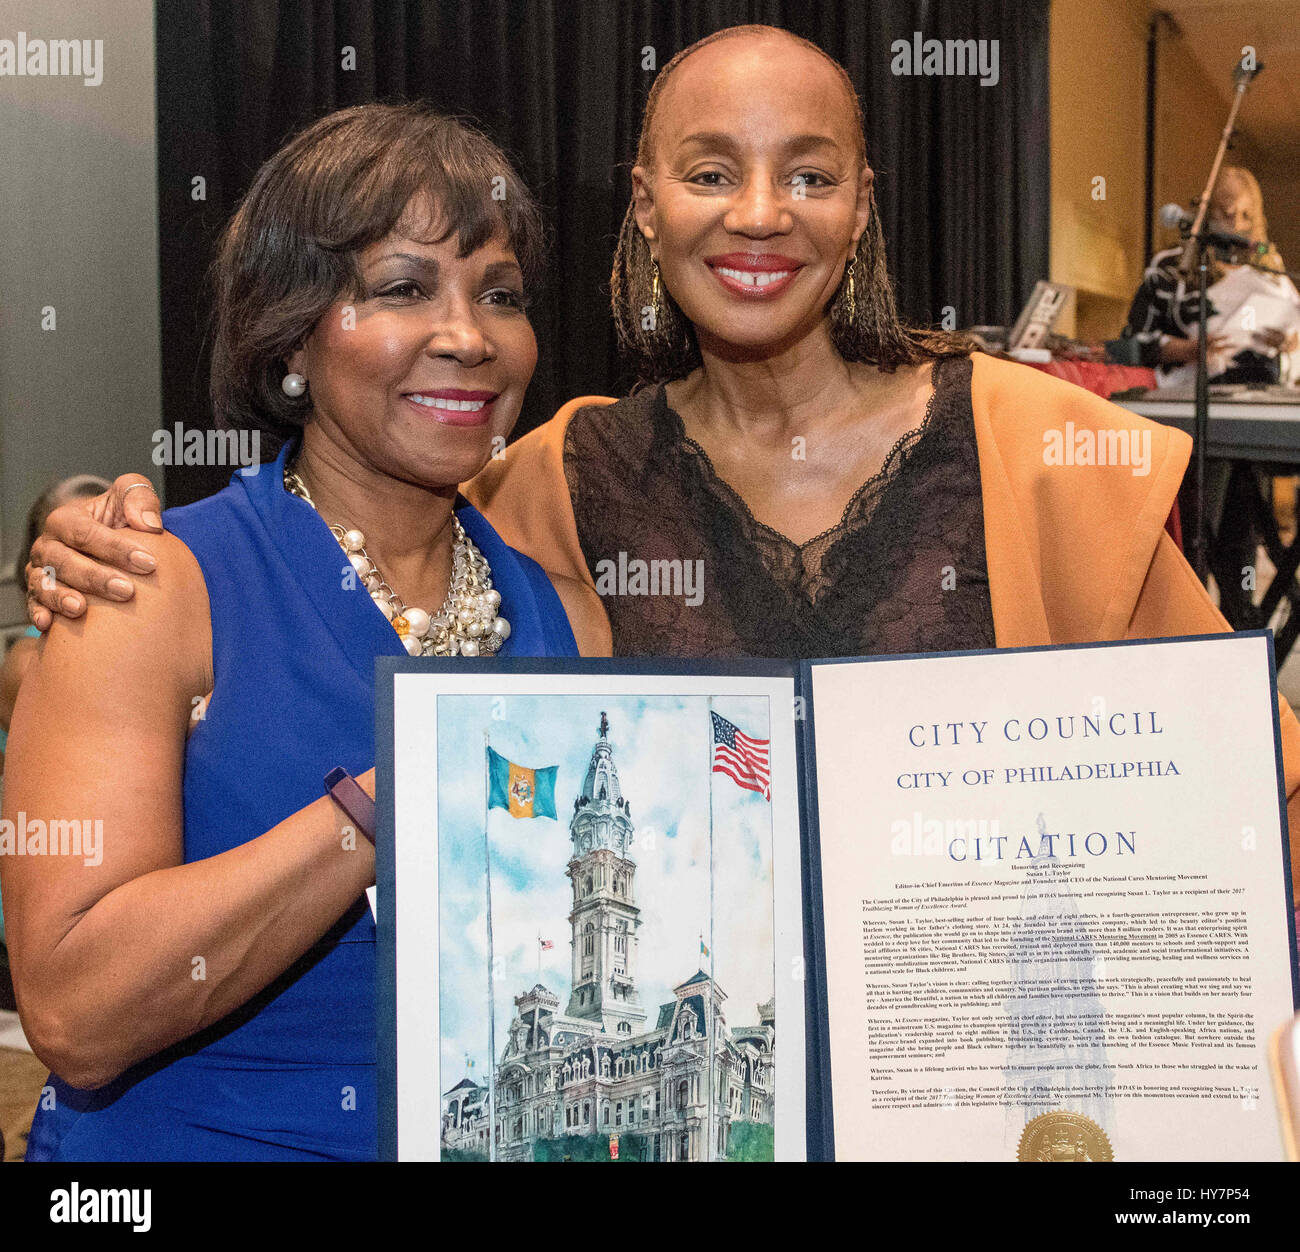 Philadelphia, Pennsylvania, USA. 1st Apr, 2017. SUSAN L TAYOR, best-selling author of four books, and editor of eight others and former Chief Editor of Essence Magazine receives a City of Philadelphia proclamation from City Councilwoman, BLONDELL REYNOLD BROWN, at the WDAS Women of Excellence Award Luncheon held at the Sheraton Hotel in Philadelphia Pa It's the3rd Annual WDAS Women of Excellence Luncheon presentedby Gwynedd Mercy University. Credit: Ricky Fitchett/ZUMA Wire/Alamy Live News Stock Photo